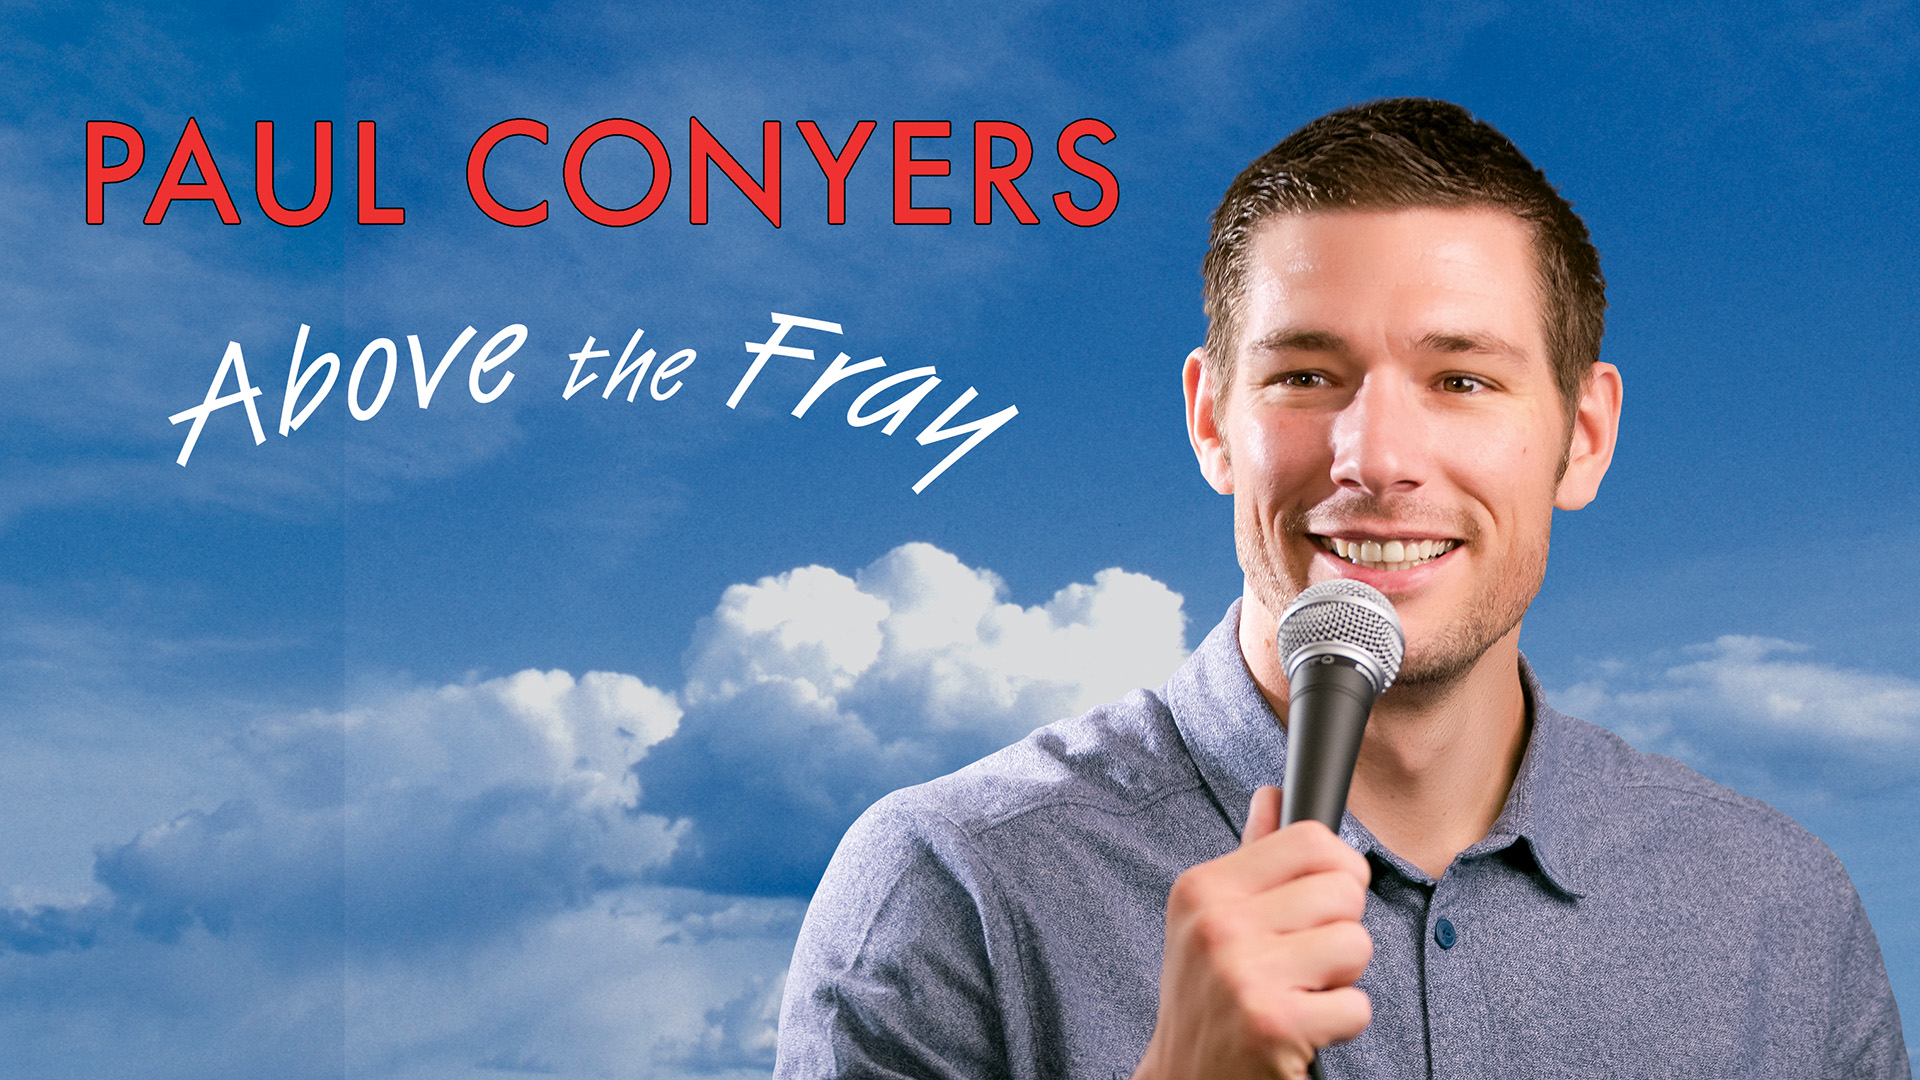 Paul Conyers - Above The Fray